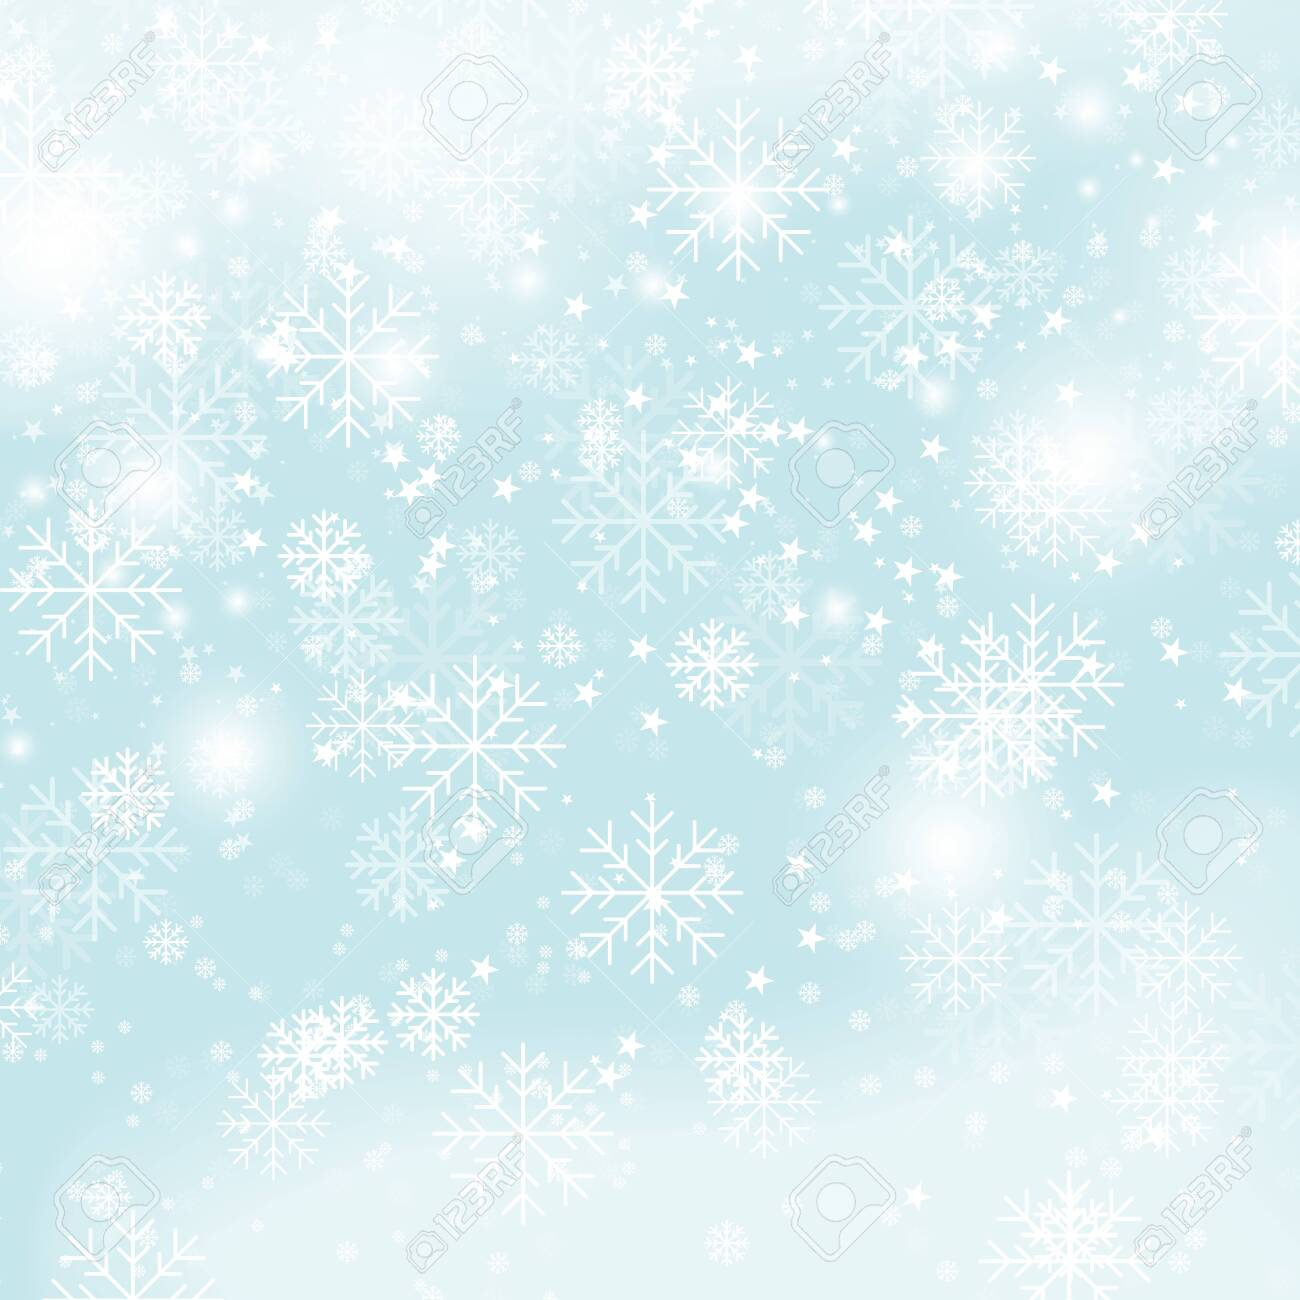 Winter pattern Christmas snowflakes on blue background vector illustration. New Year snowfall seamlessly wallpaper gradient vector image - 123749955